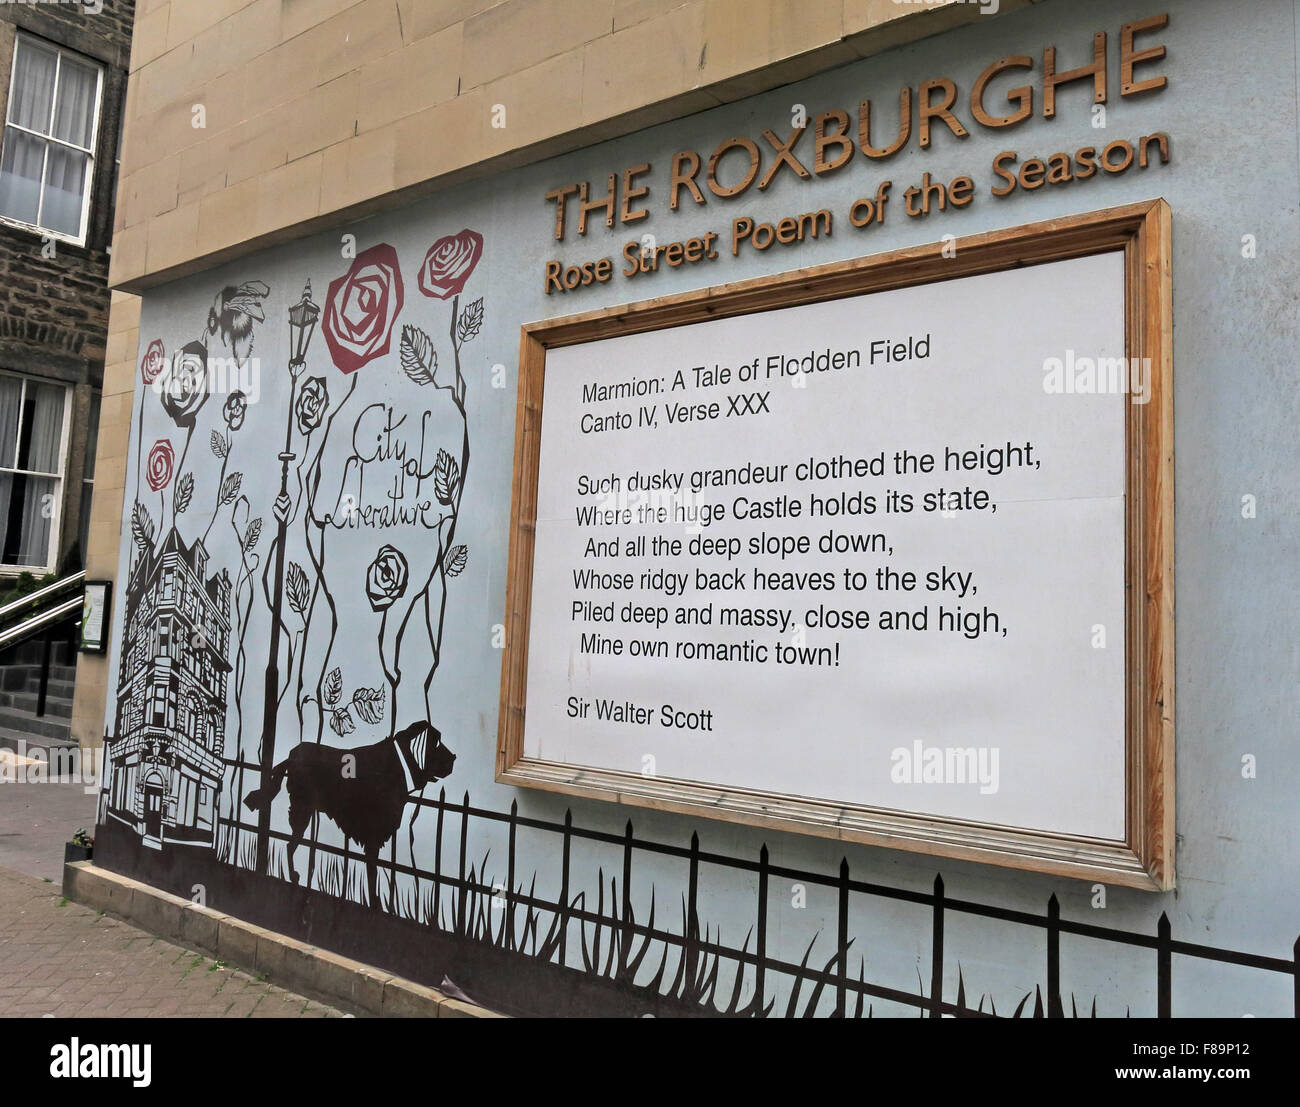 Rose Street poem of the season,Edinburgh,Scotland,UK - Stock Image